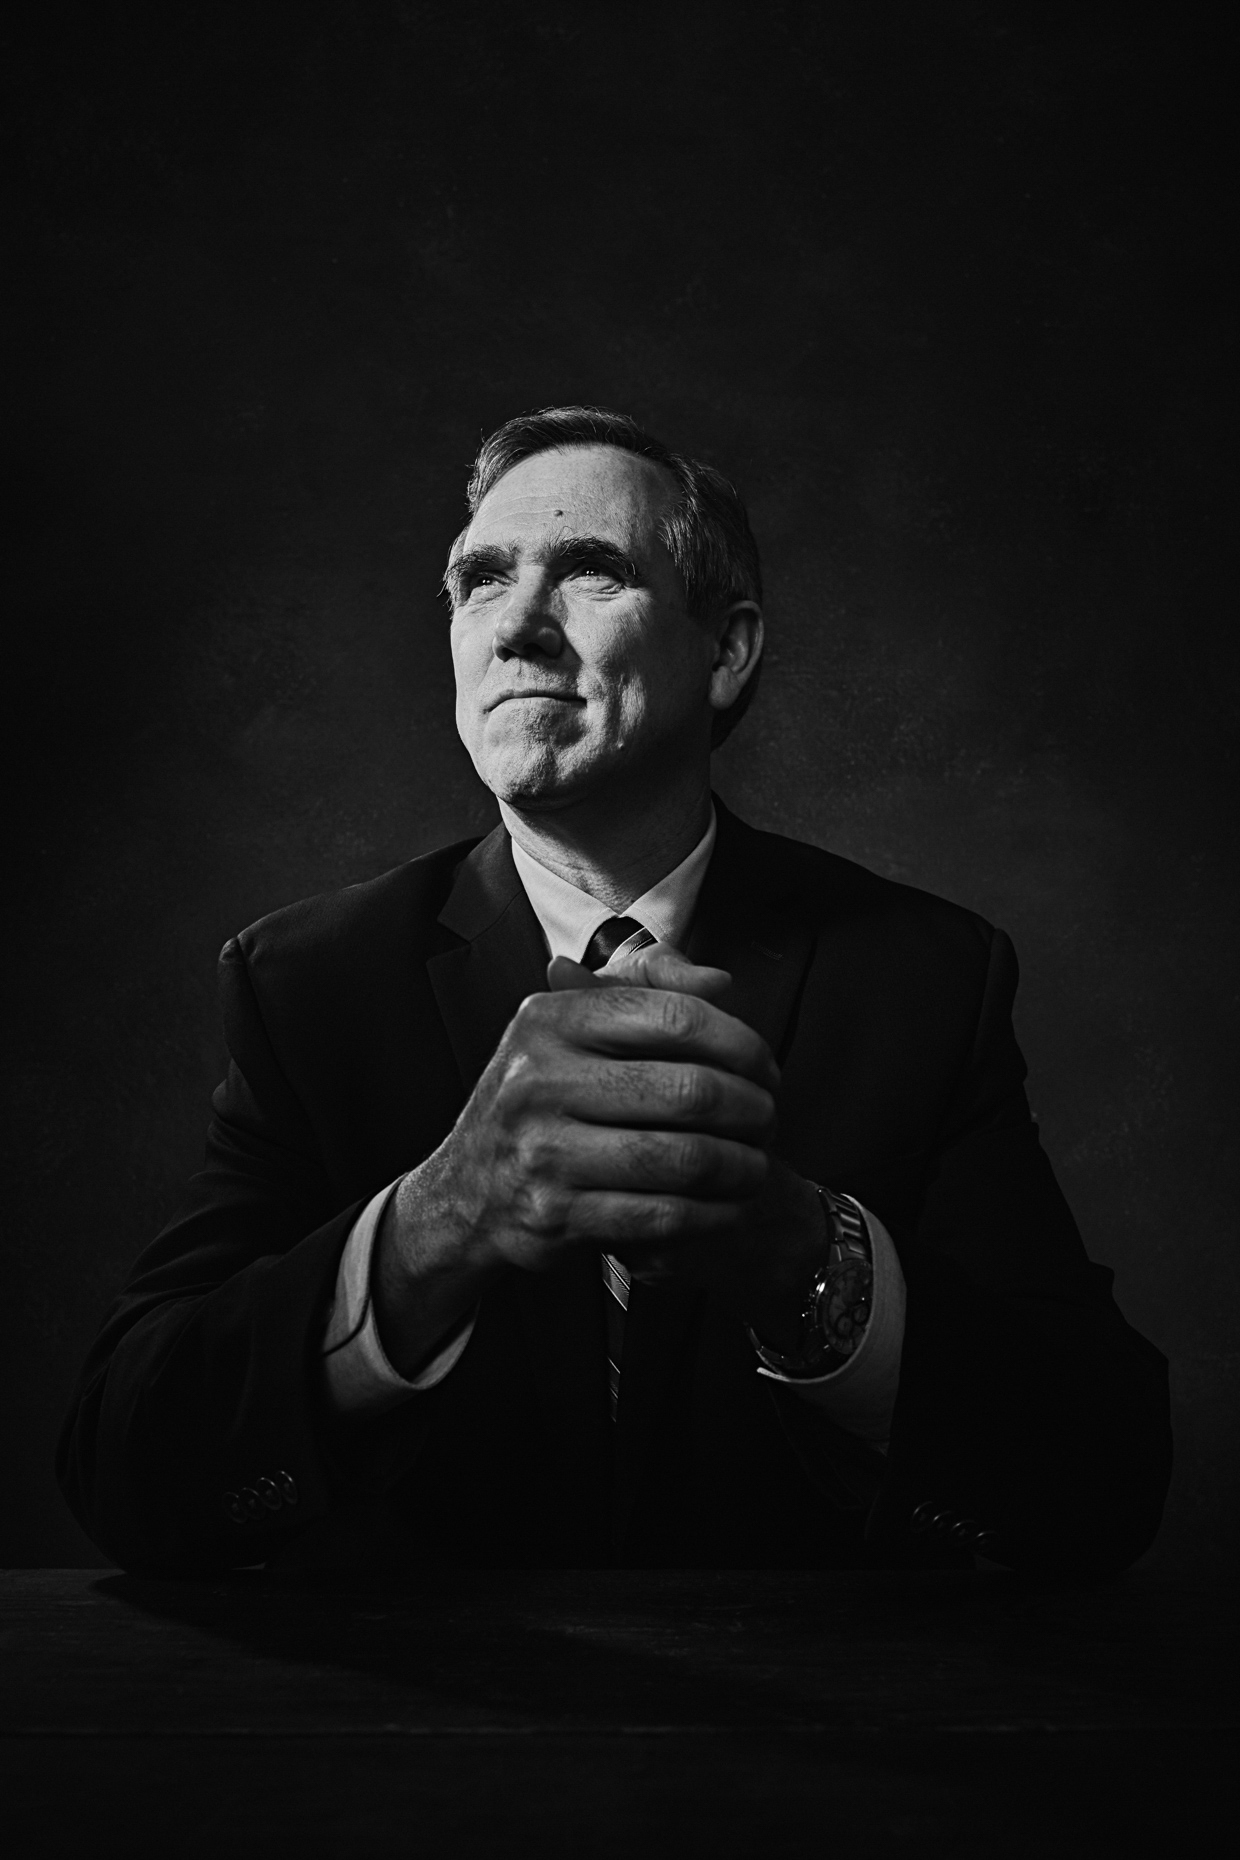 B&W Editorial portrait of Oregon senator Jeff Merkley in a formal pose holding his hands thoughtfully for Portland Monthly Magazine by Andy Batt